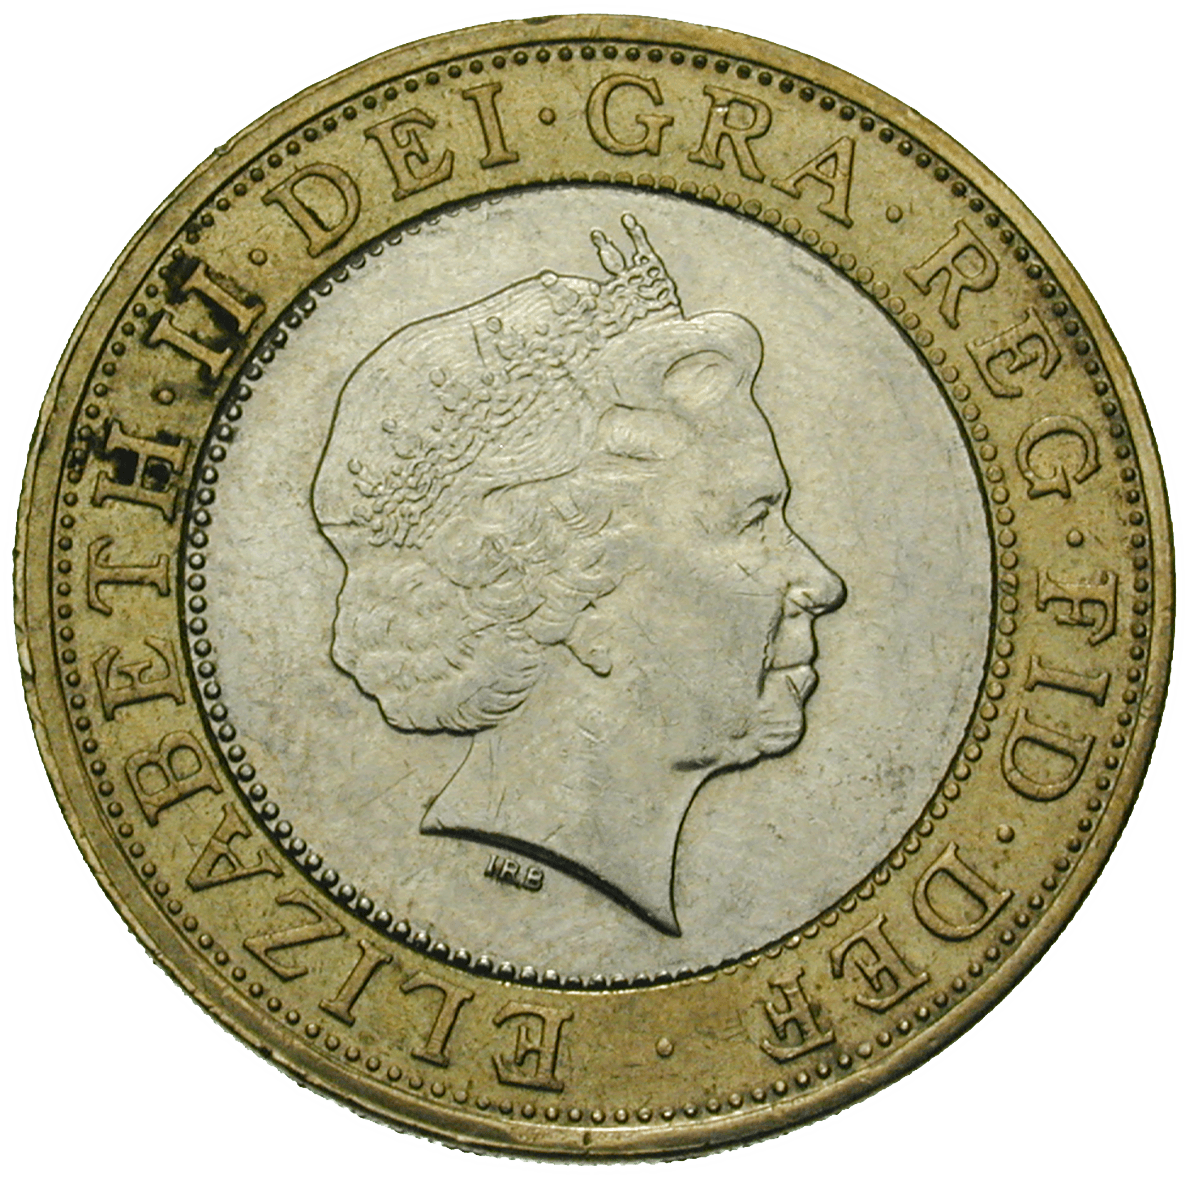 United Kingdom of Great Britain, Elizabeth II, 2 Pounds 1998 (obverse)